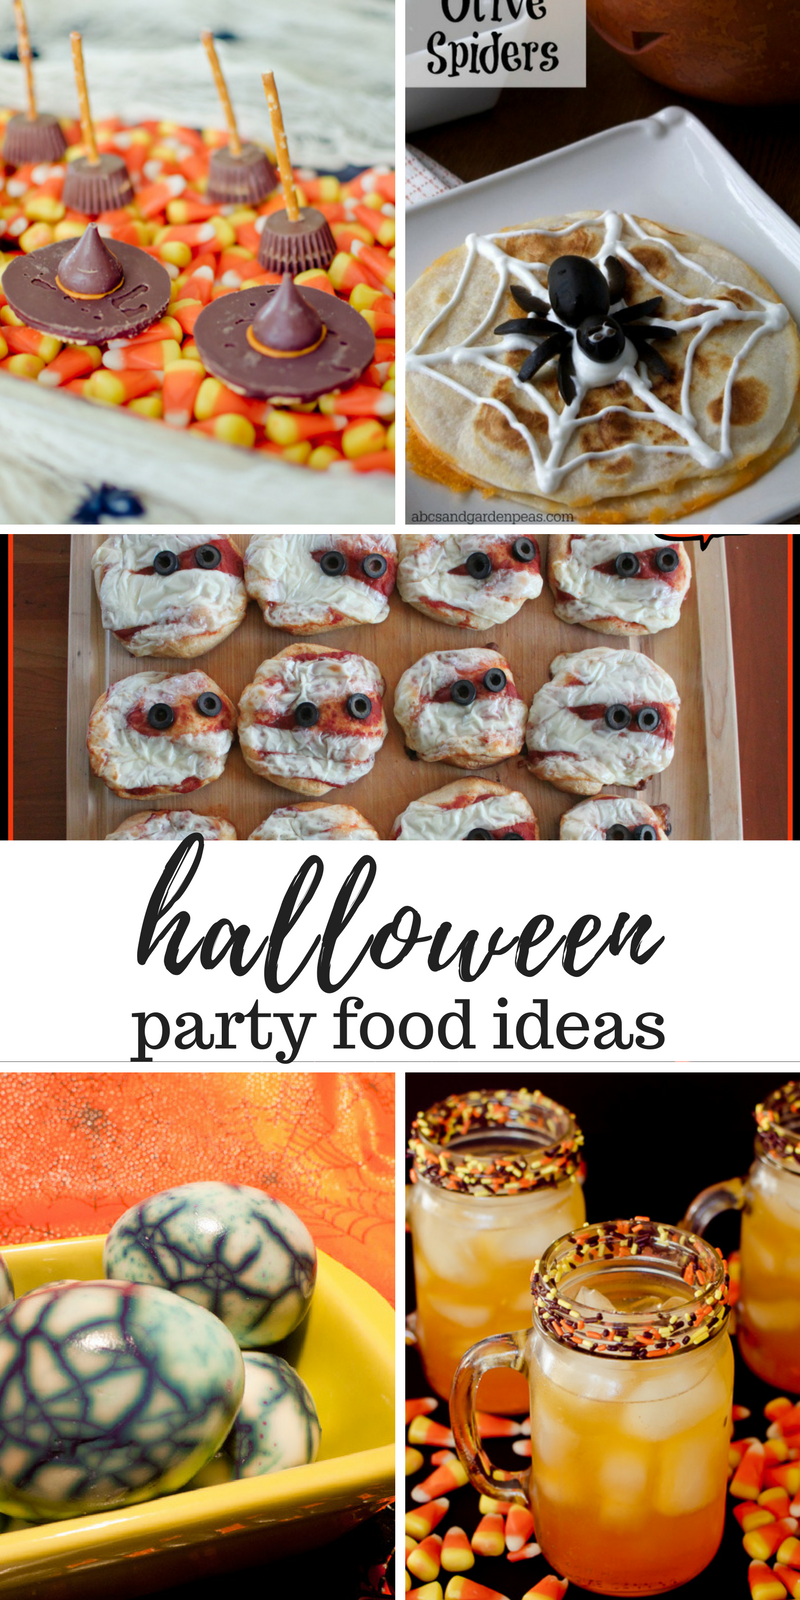 halloween-party-food-ideas-1